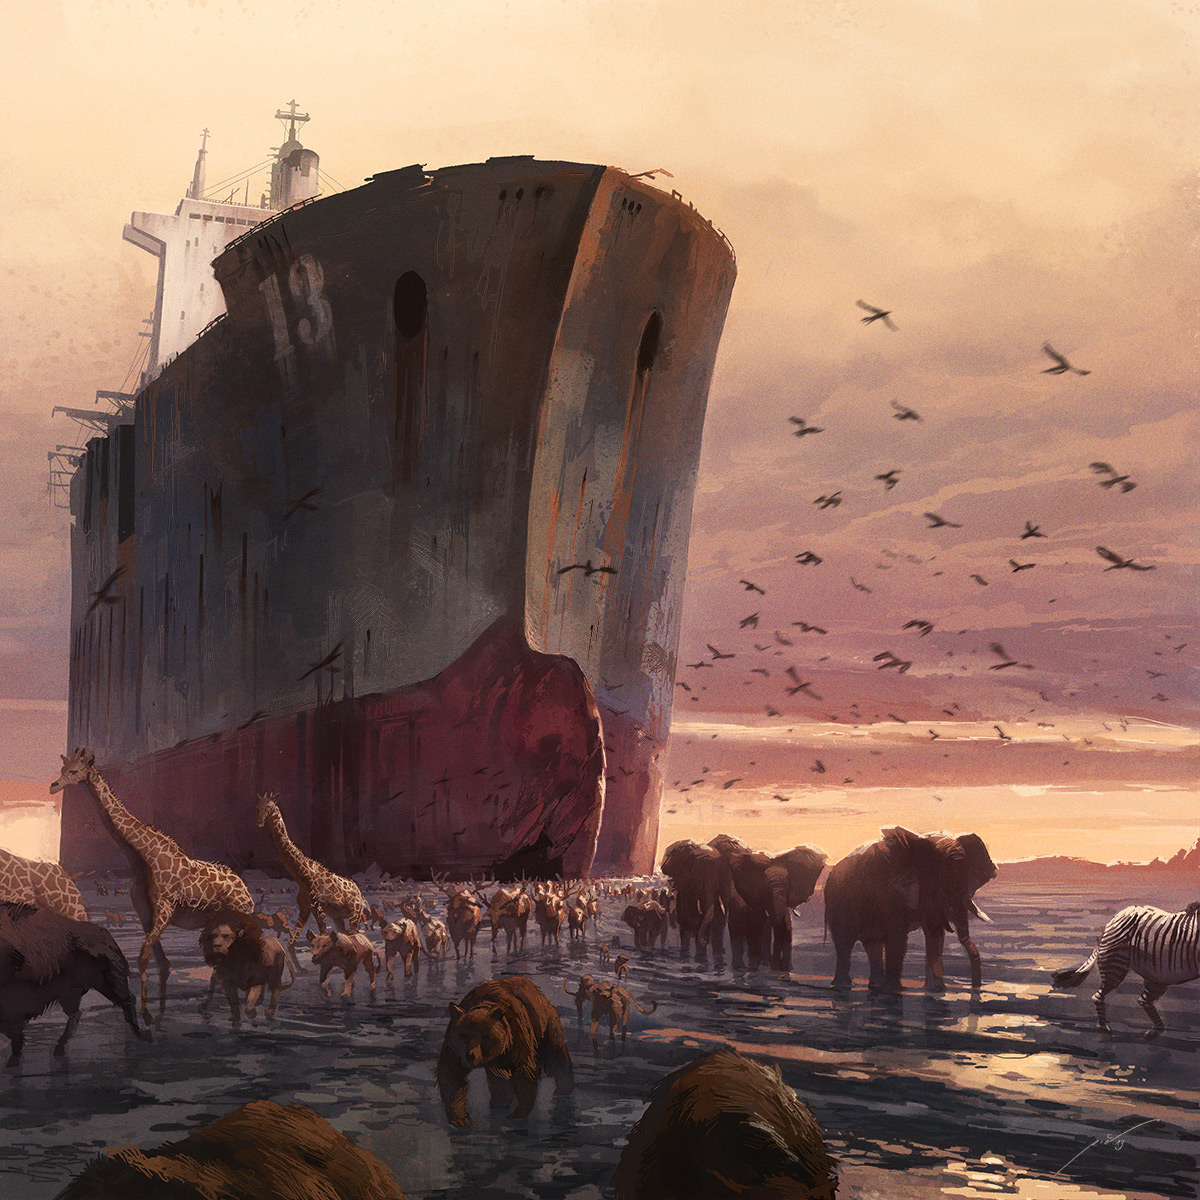 Noah's Ark (reloaded)